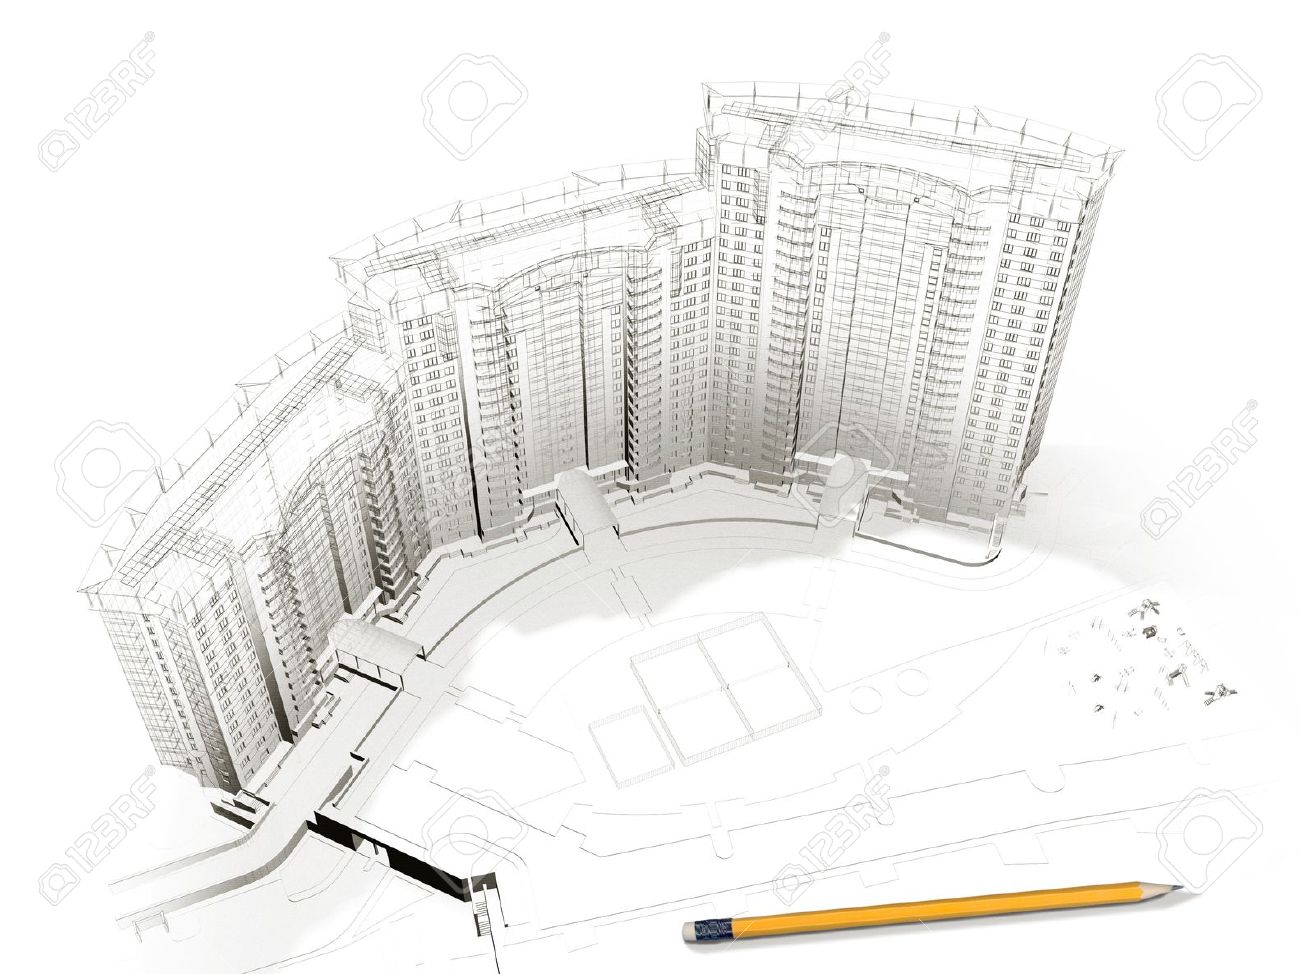 Architecture Building Drawing building sketch stock photos. royalty free building sketch images